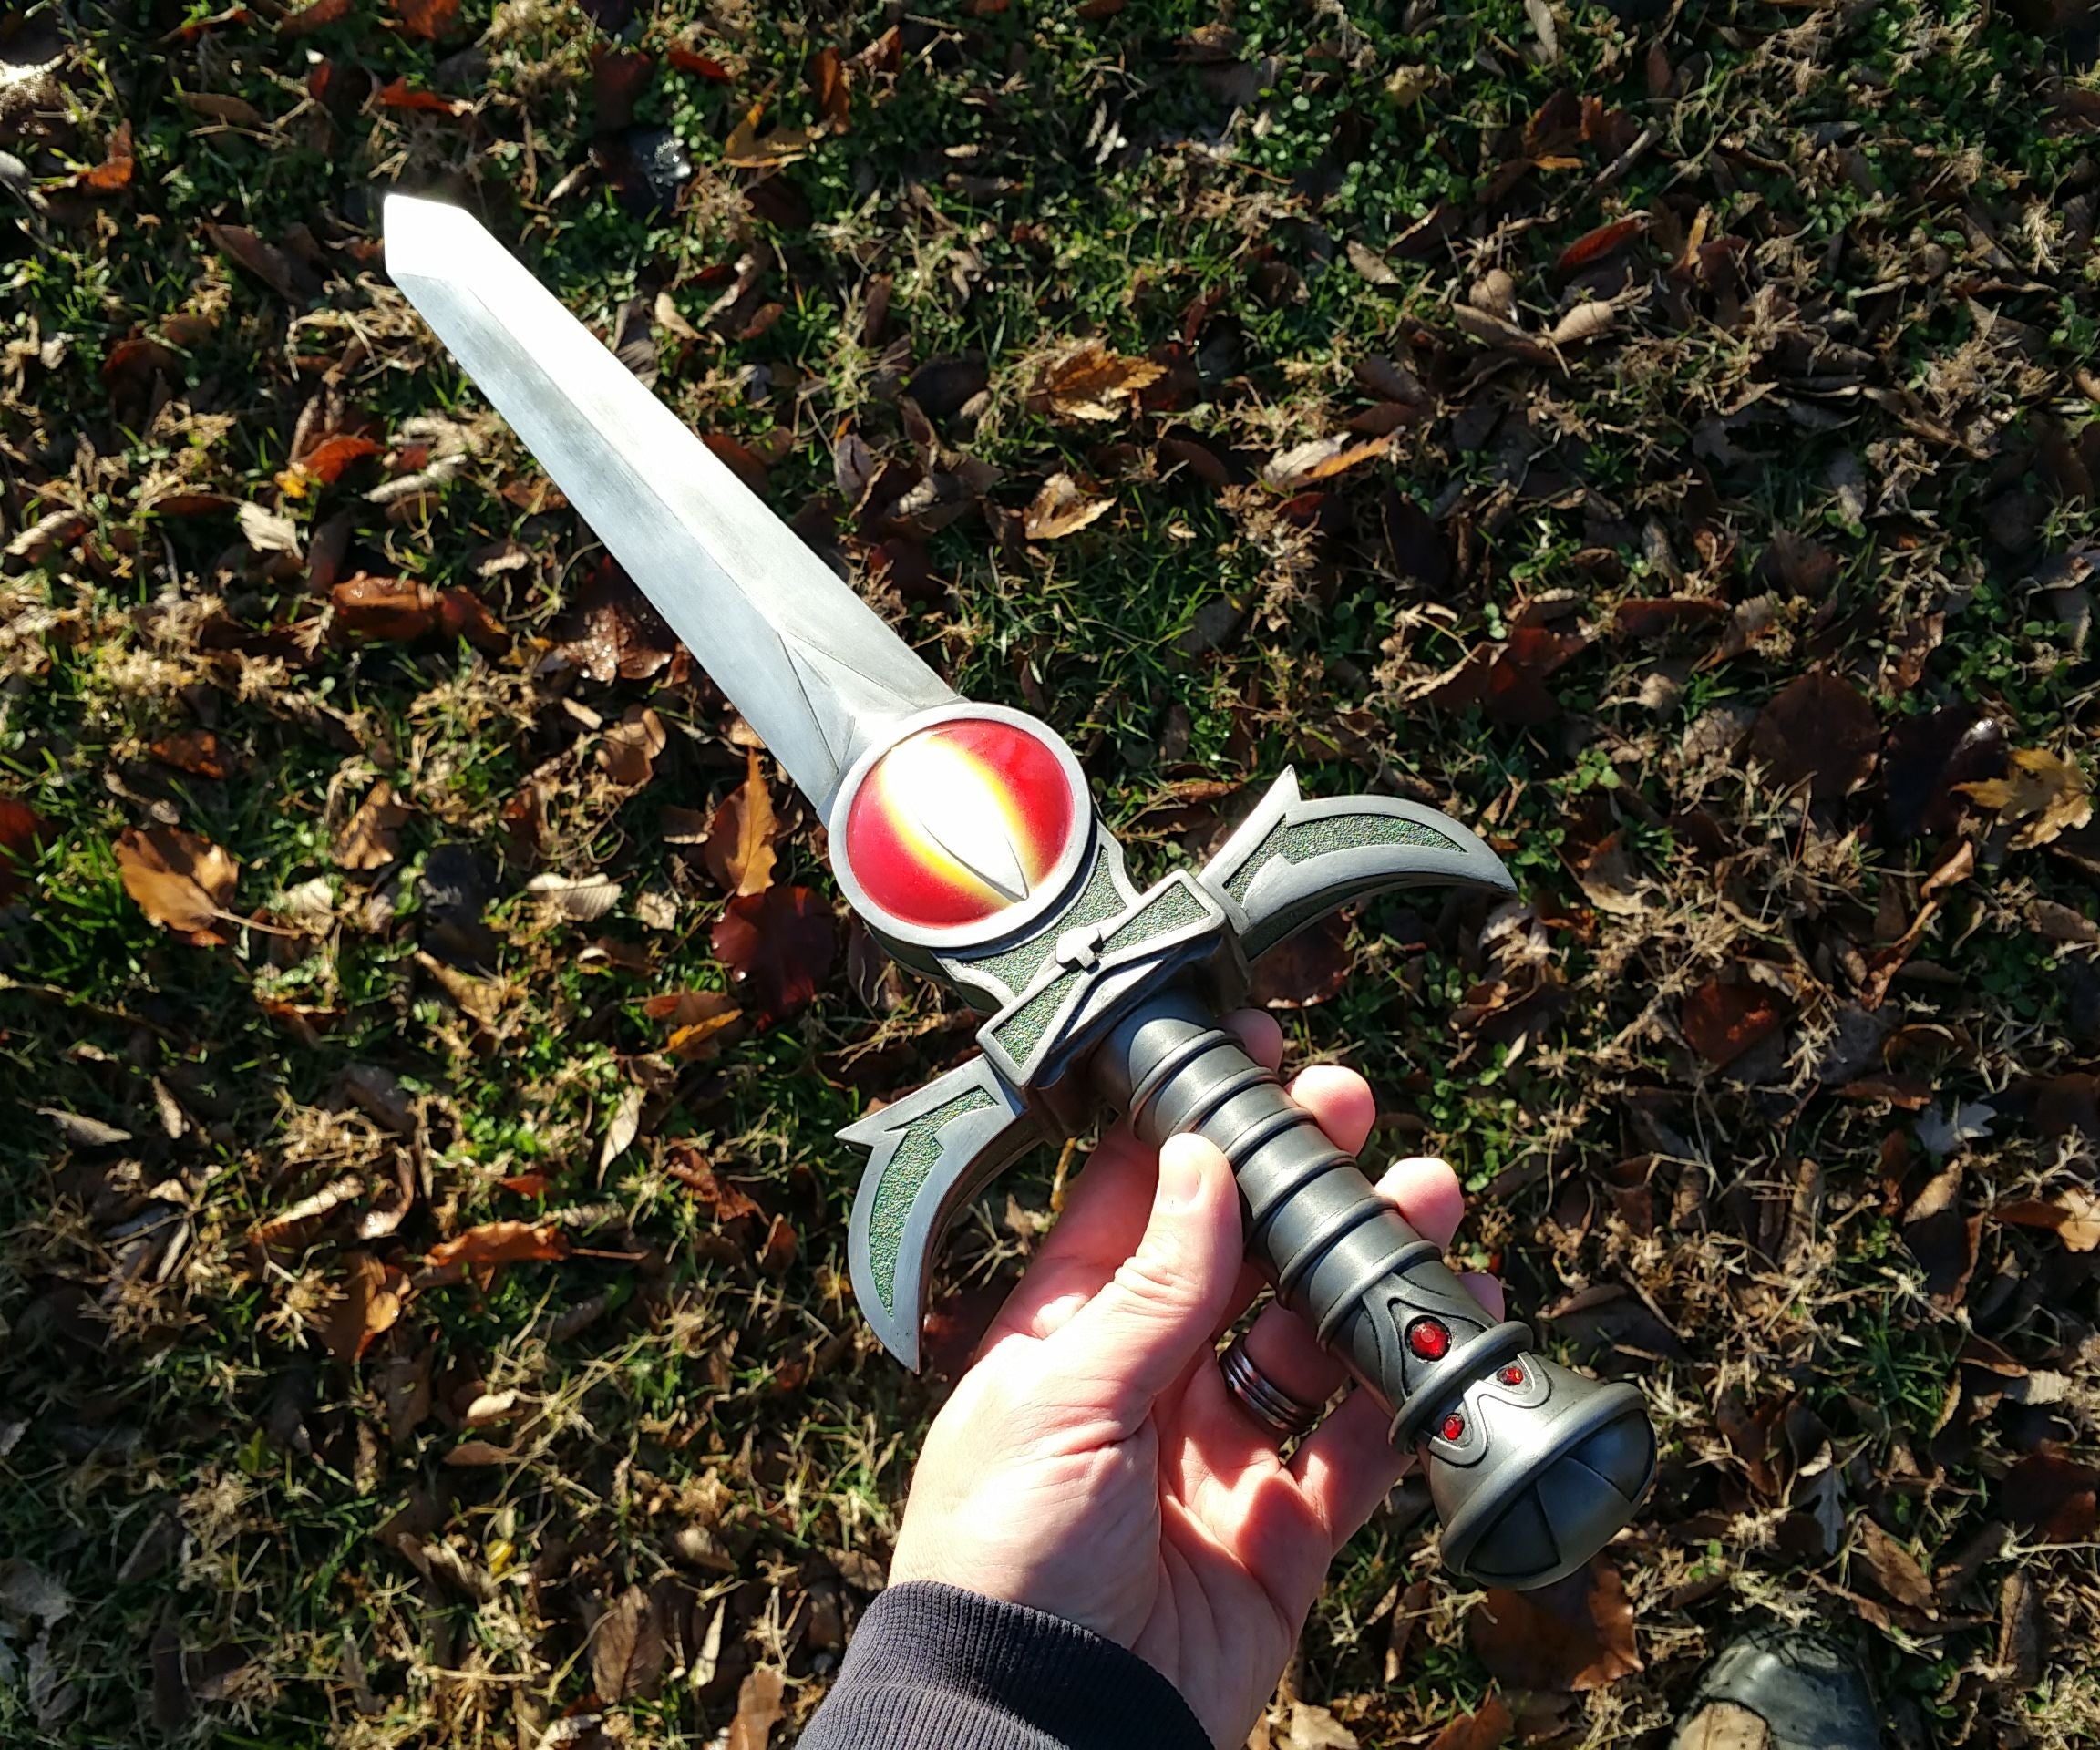 Thundercats Sword of Omens in Dagger and Sword form for laser cutting SVG